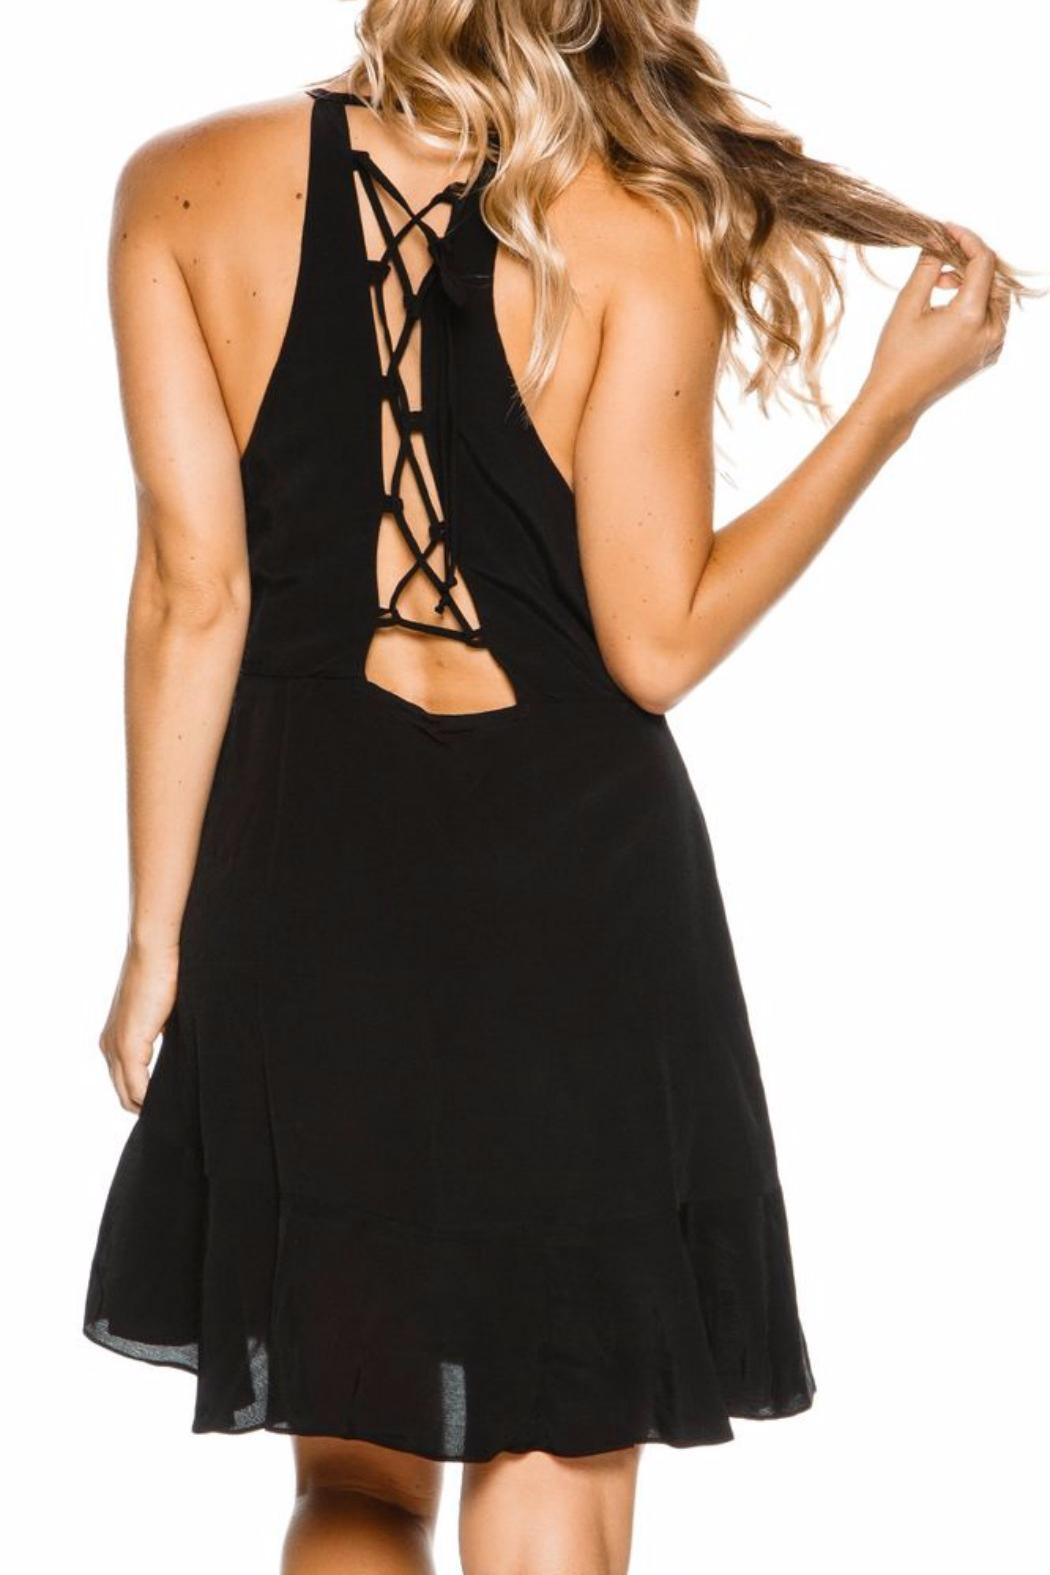 Lucy Love Up All Night Dress - Side Cropped Image